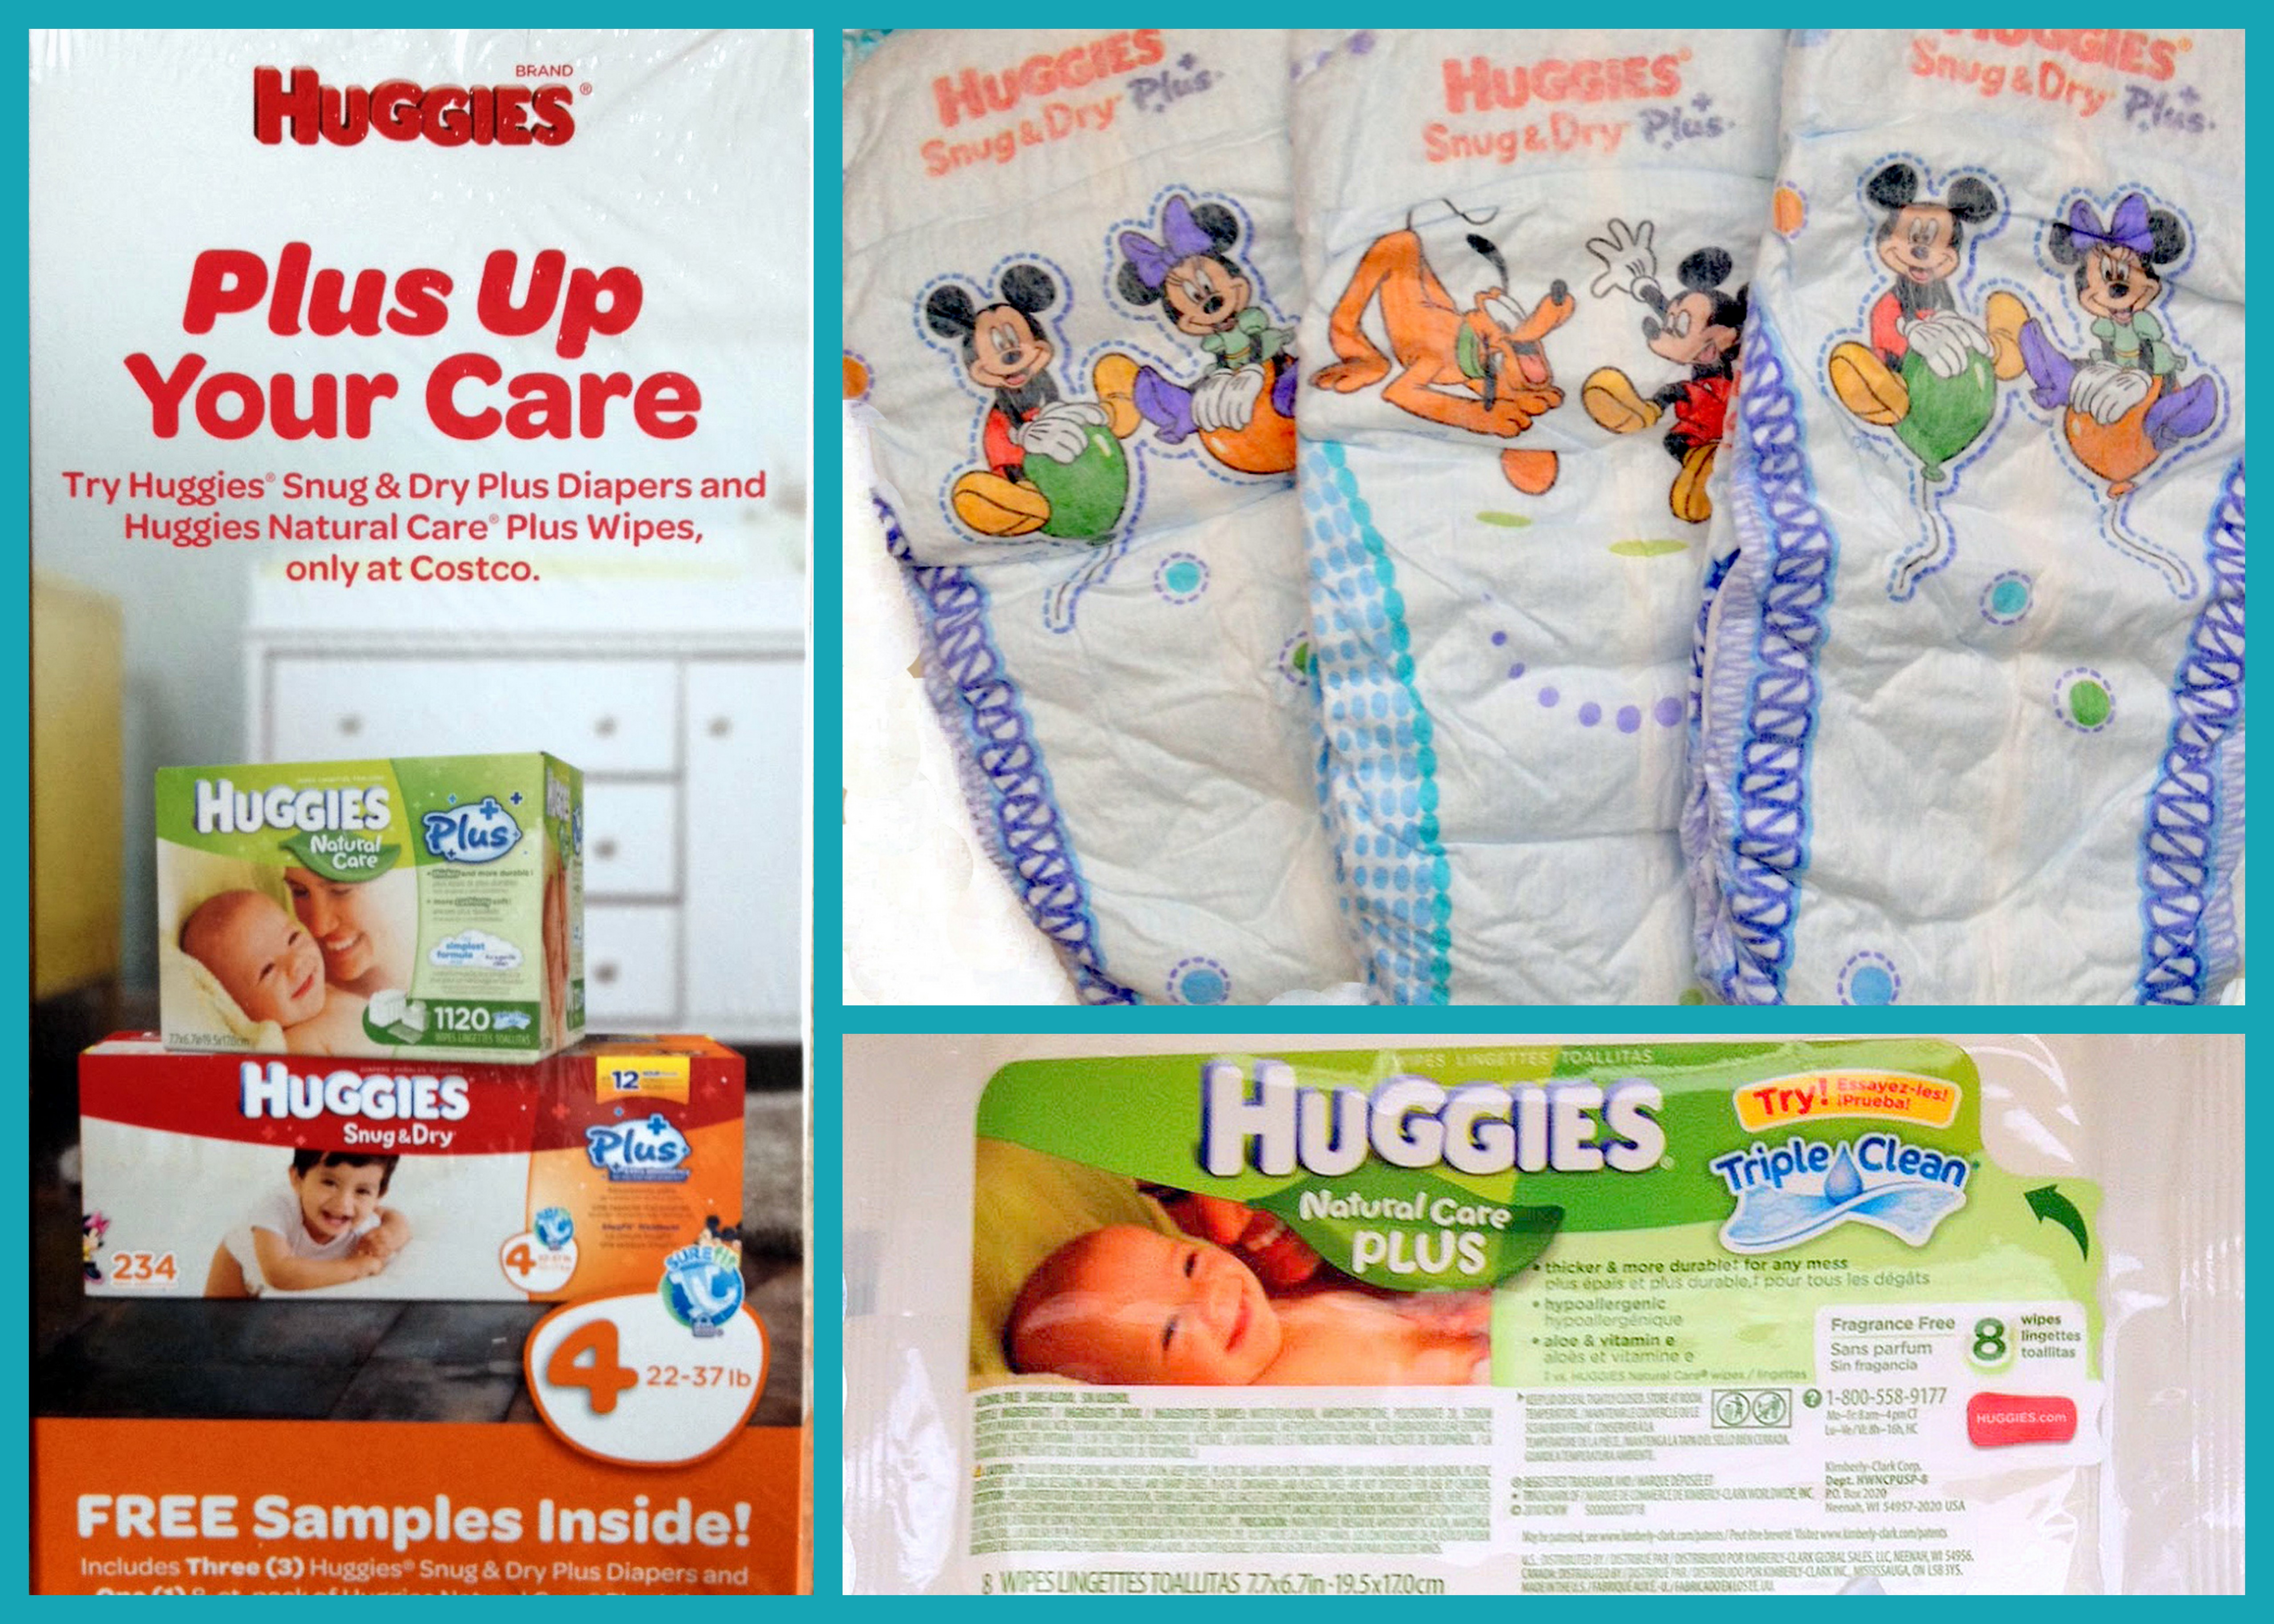 Request FREE Samples of Huggies Diapers and Wipes from Costco ...